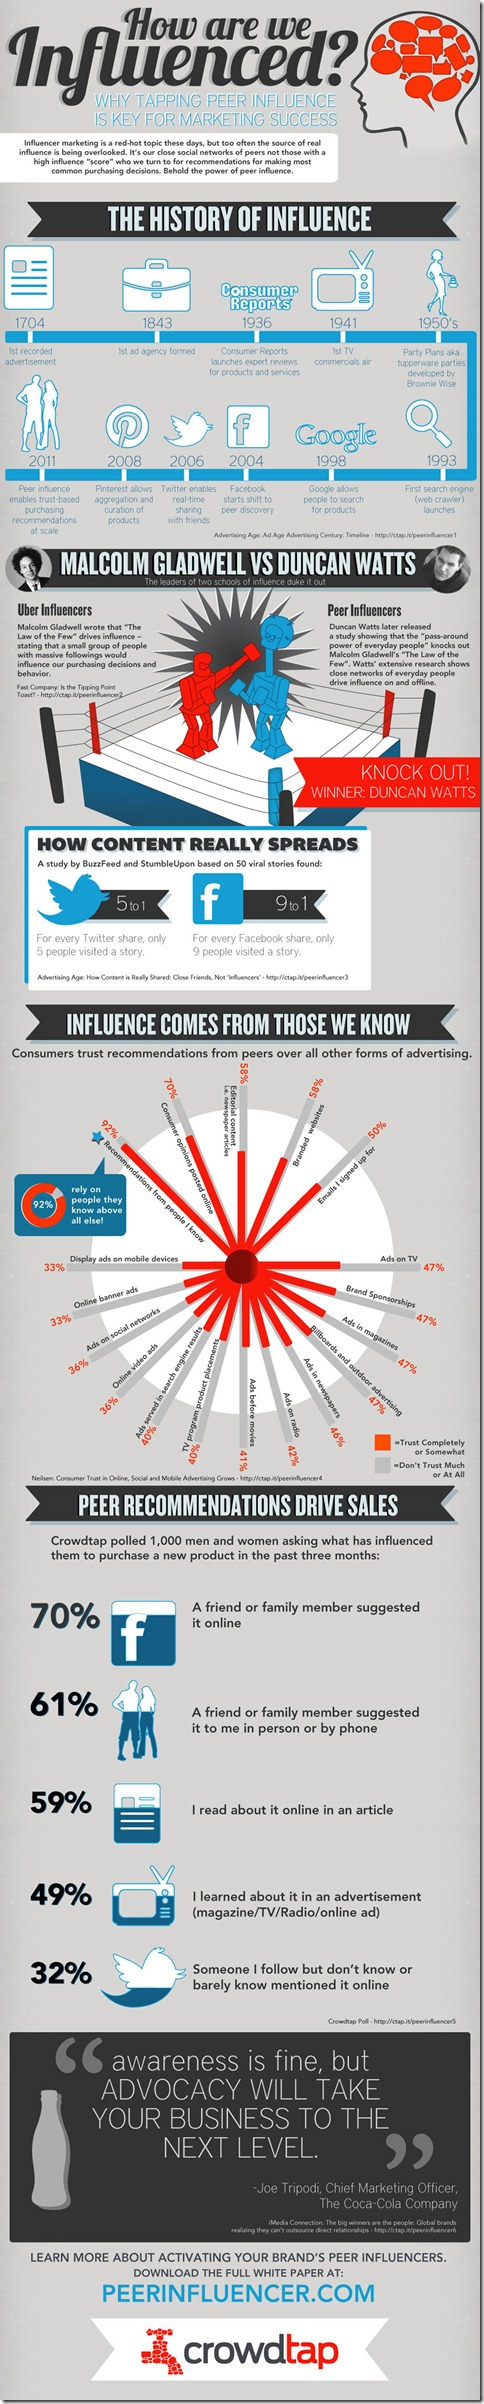 crowdtap-influence-marketing-infographic